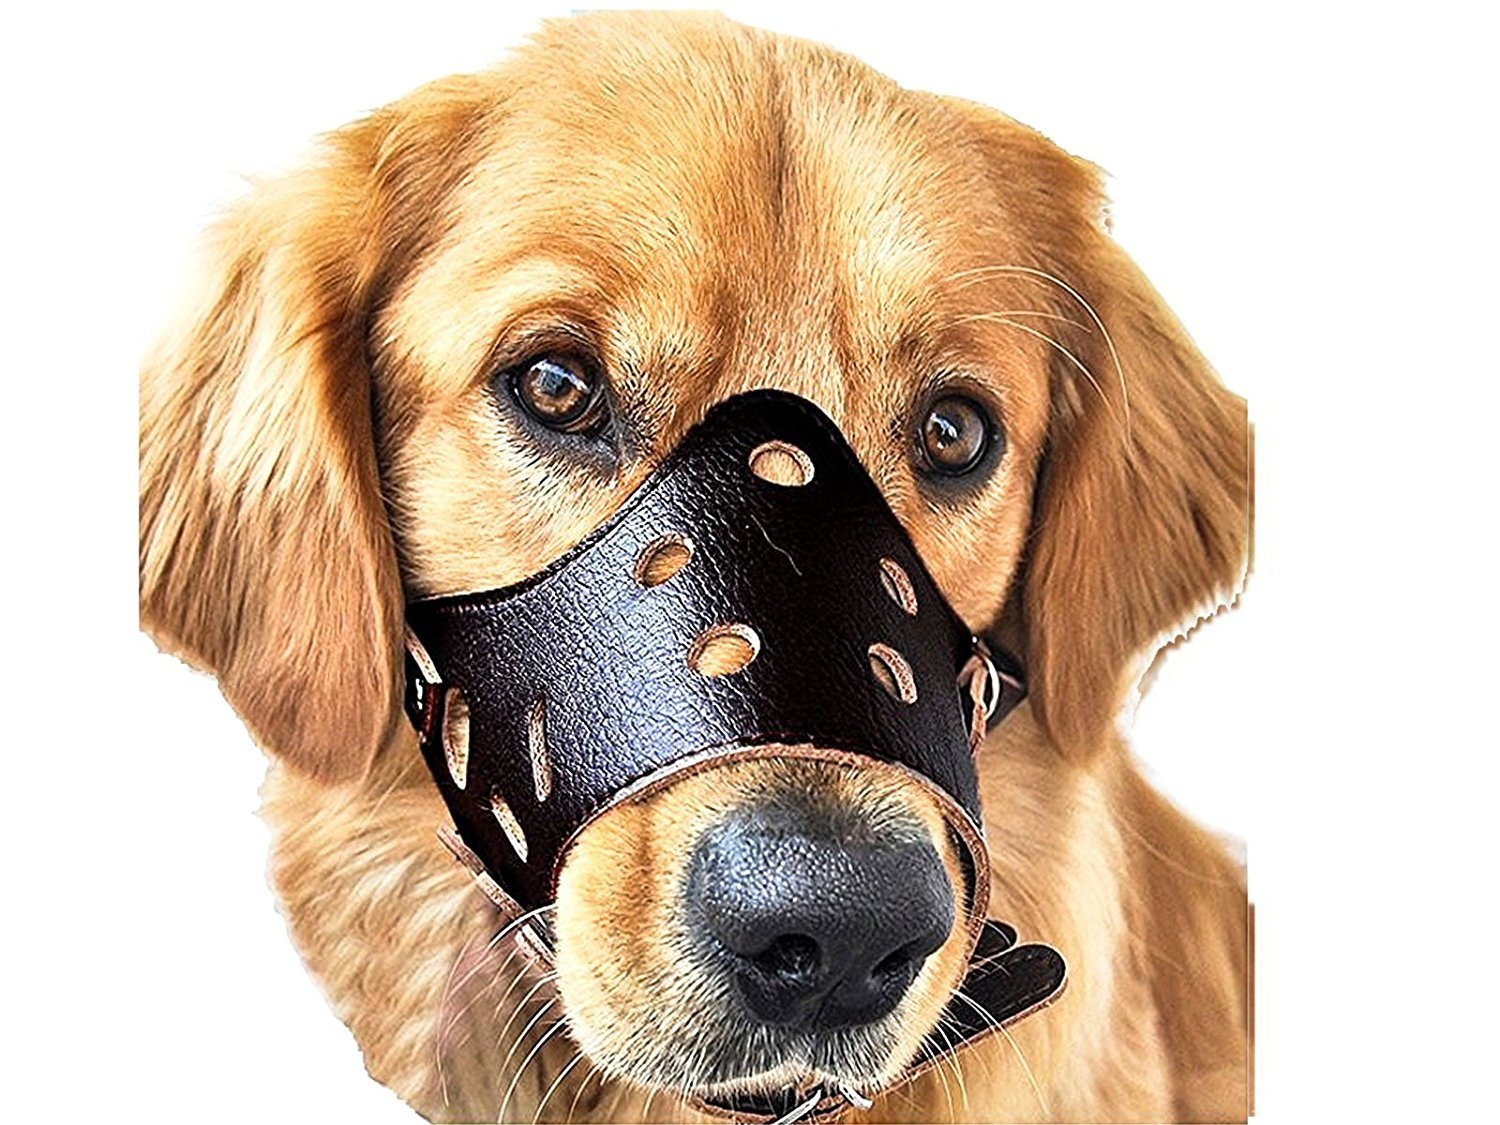 Safety Safety Puppy Puppy Snout Mask para morder y ladrar Mefe Dog Muzzle Leather Negro S